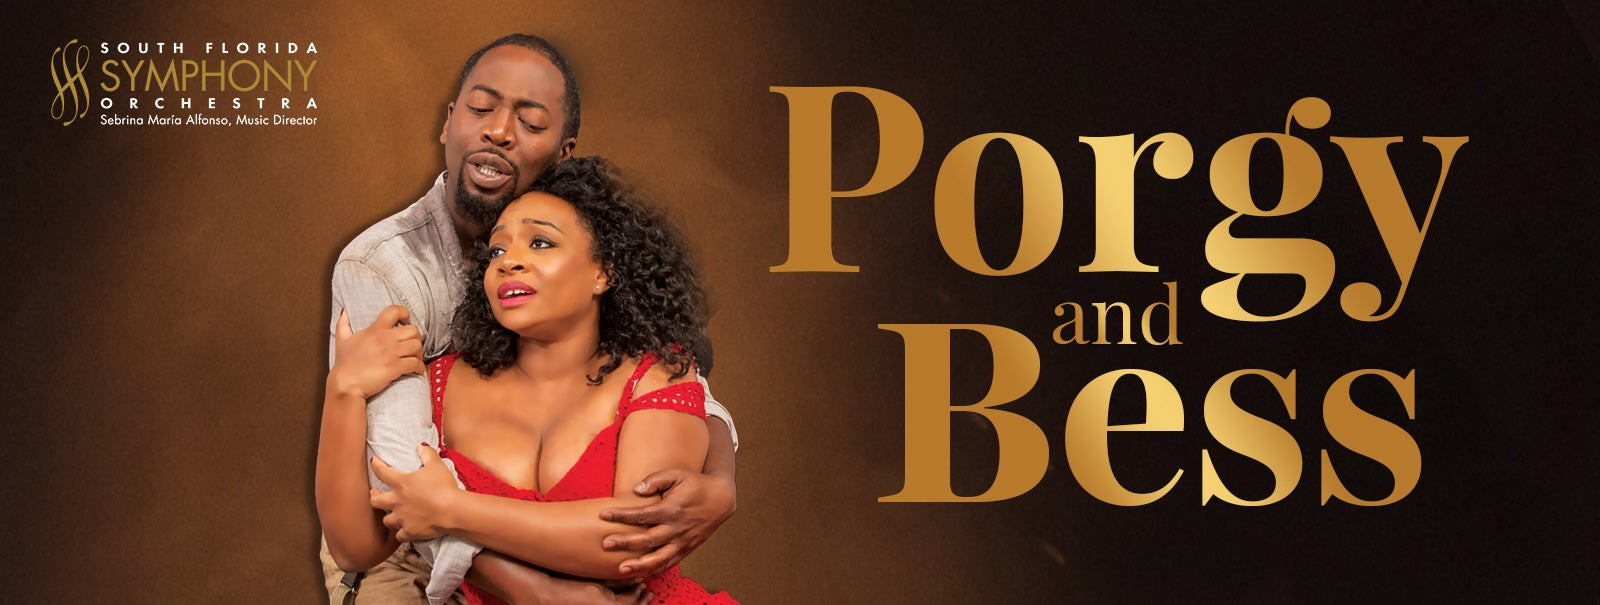 More Info - South Florida Symphony Orchestra: Porgy and Bess